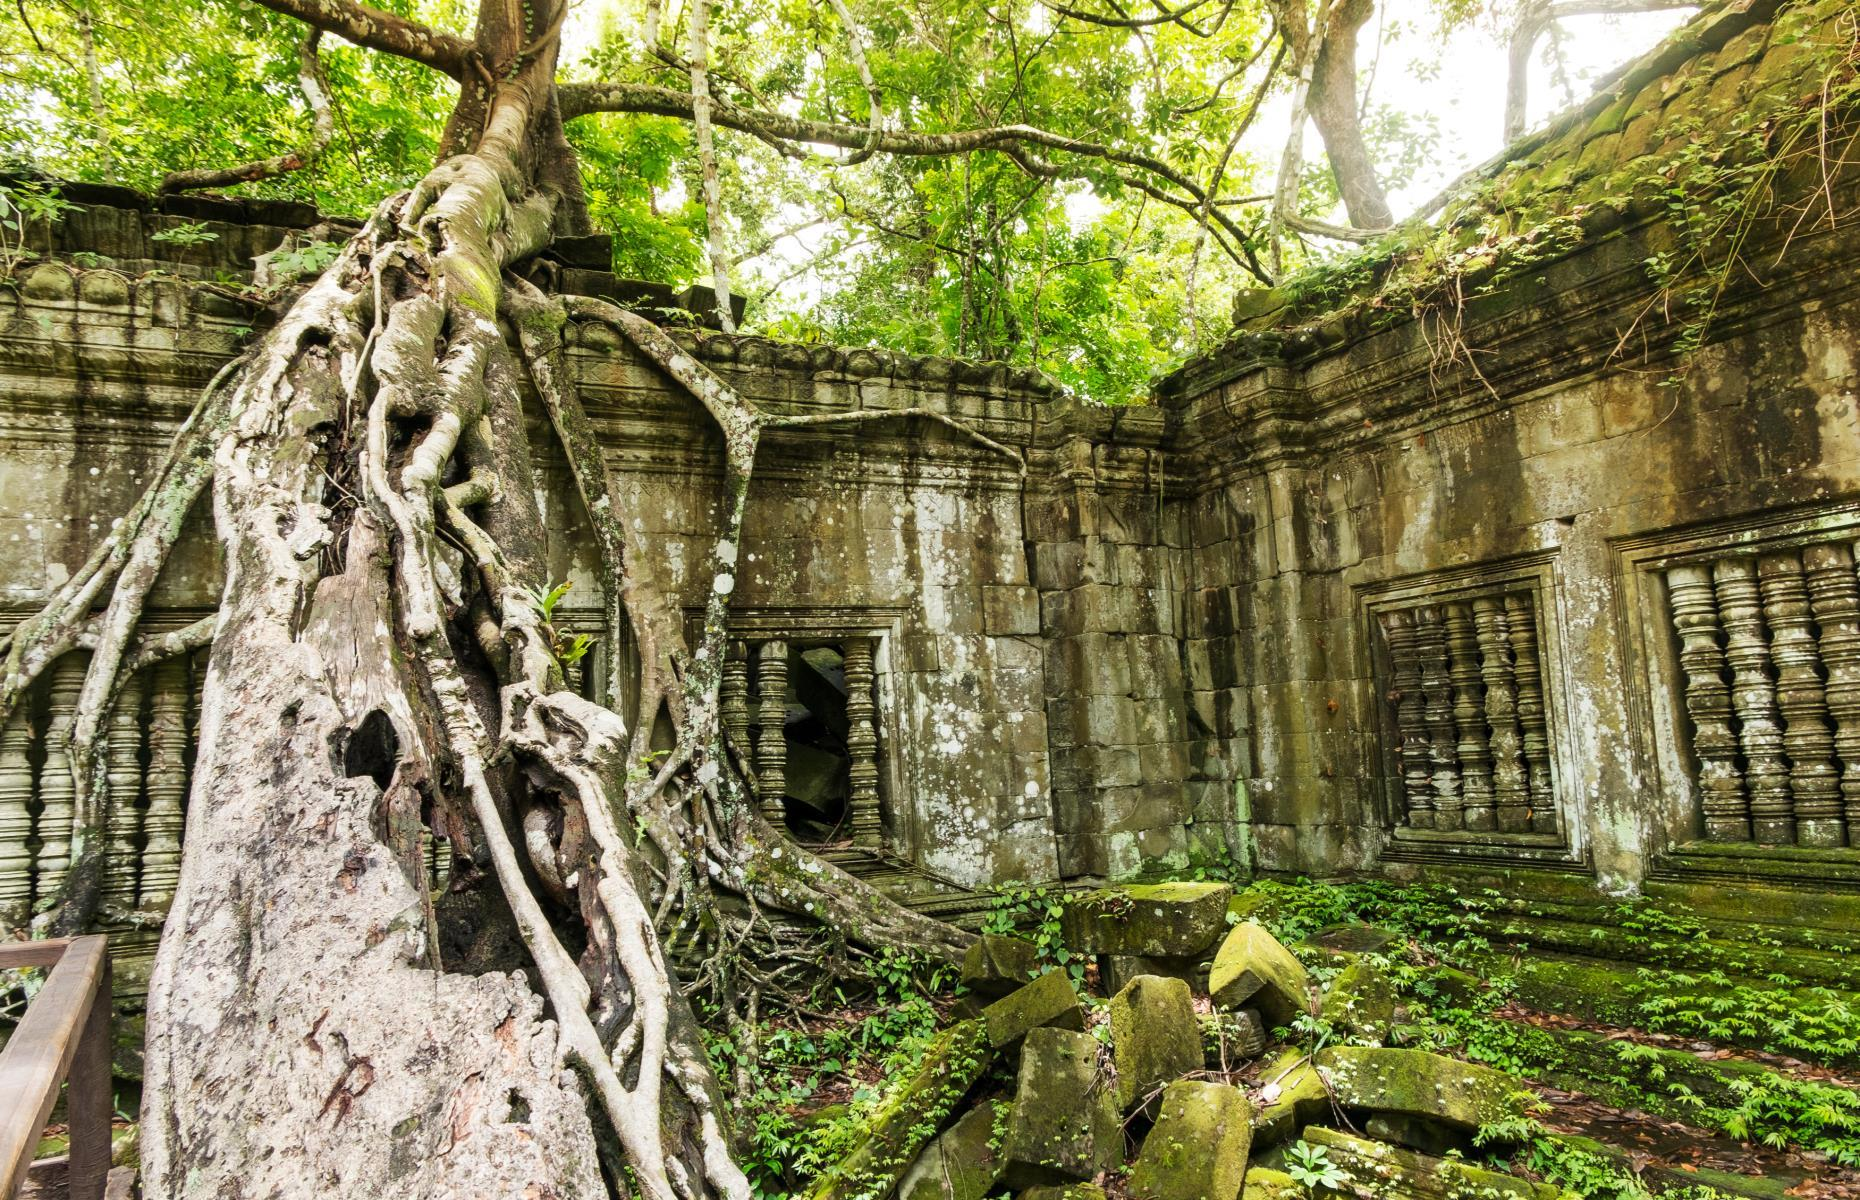 Slide 48 of 64: Nature has run riot in many of Cambodia's other jungle ruins, including the large and enigmatic temple of Beng Mealea that has been dramatically devoured by the surrounding forest. Clambering around these remote and overgrown ruins, where crumbling blocks are covered in lush vegetation and seemingly suffocated by strangler figs, is a reminder of the force and endurance of nature.